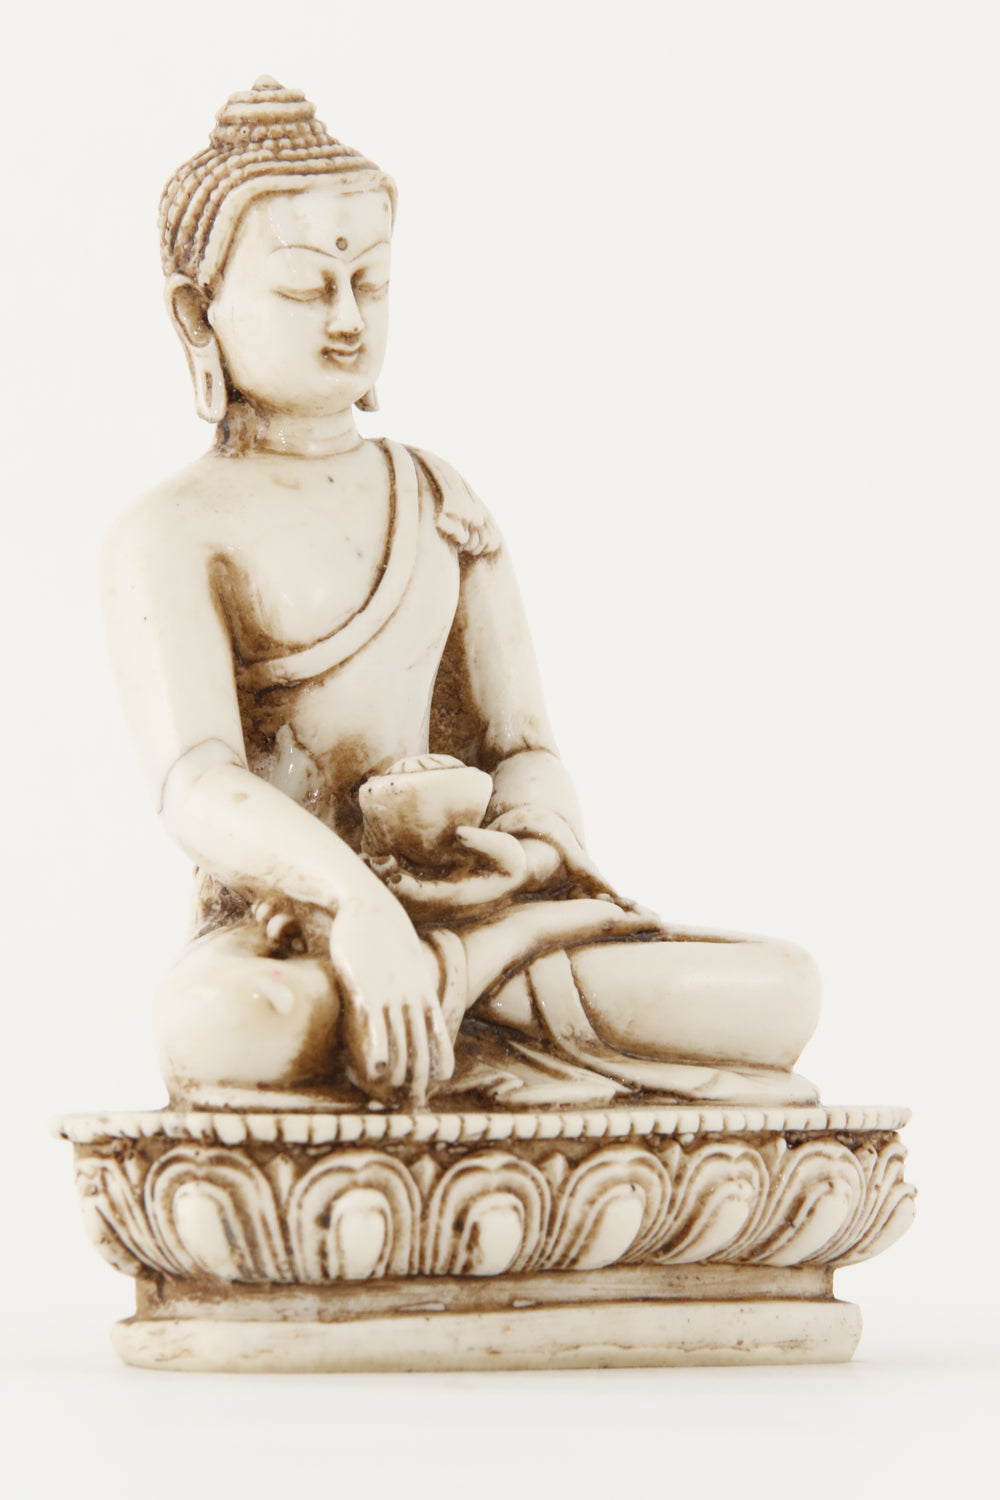 EARTH TOUCHING BUDDHA STATUE OFF-WHITE MEDIUM SIZE SIDE VIEW